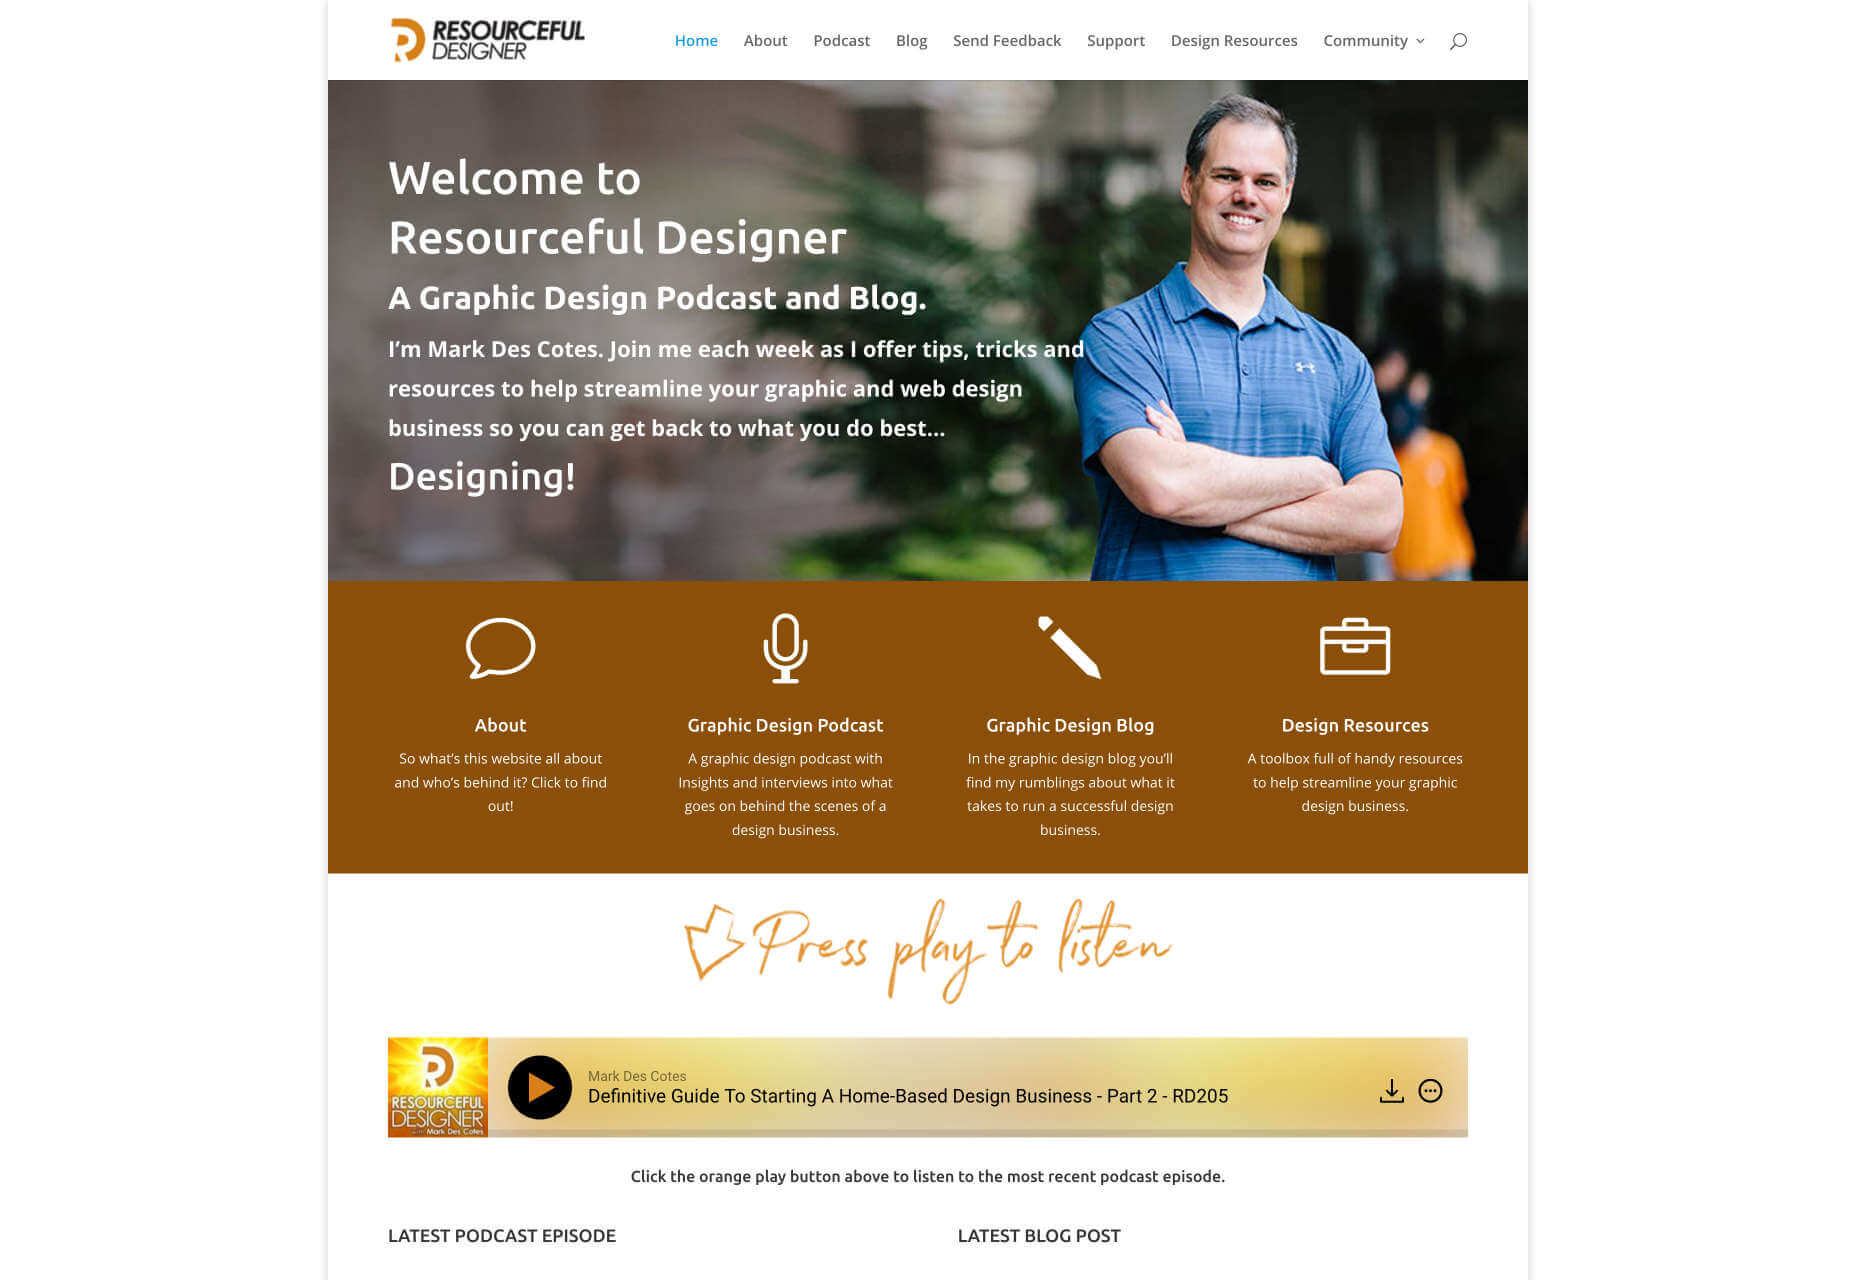 resourcefuldesigner